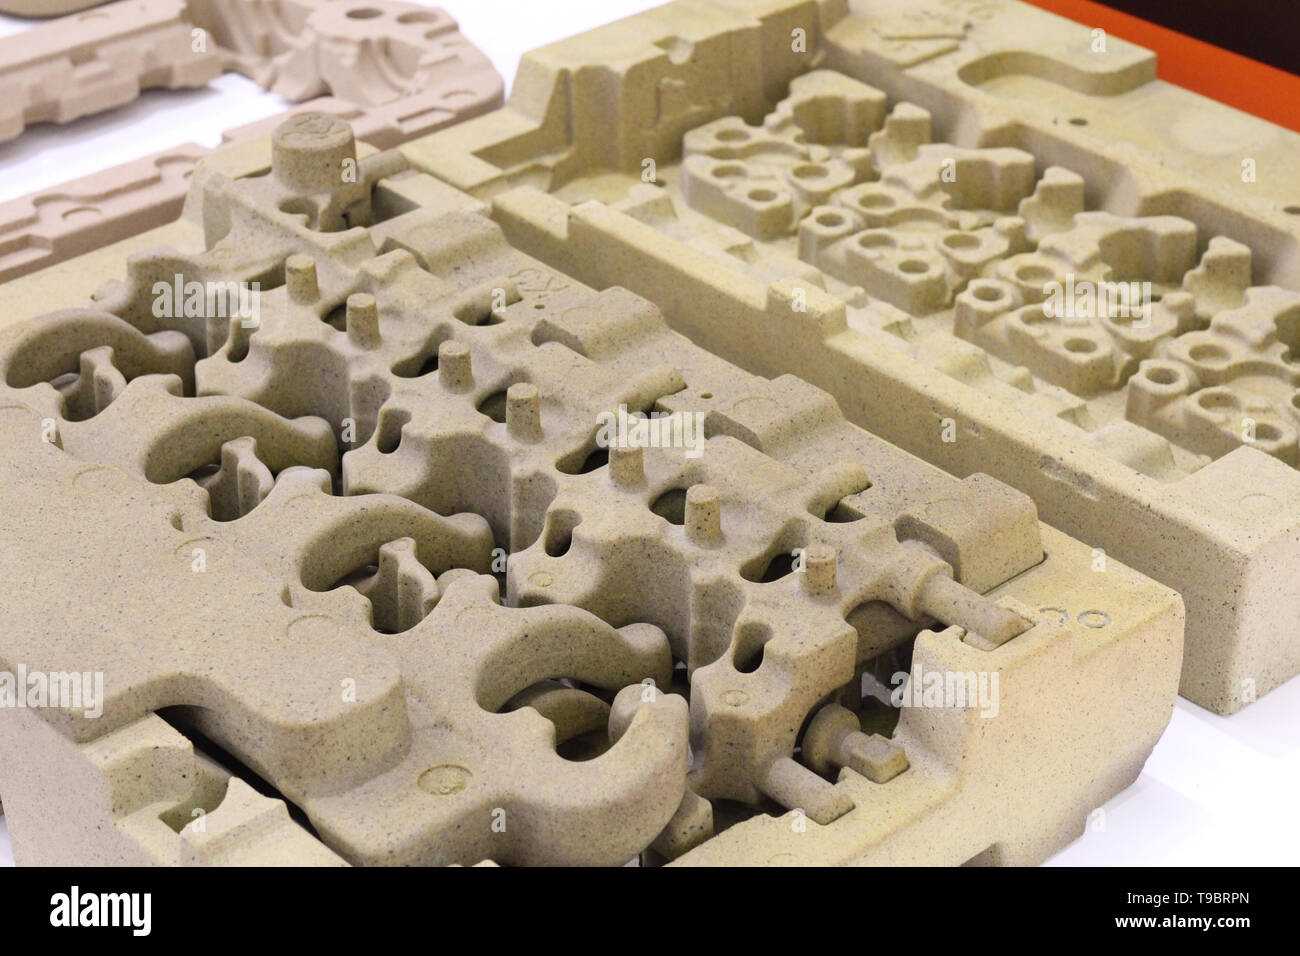 Products foundry industry. Making molds and cores. Organic binders for cold amine curing processes. Factory, production. - Stock Image